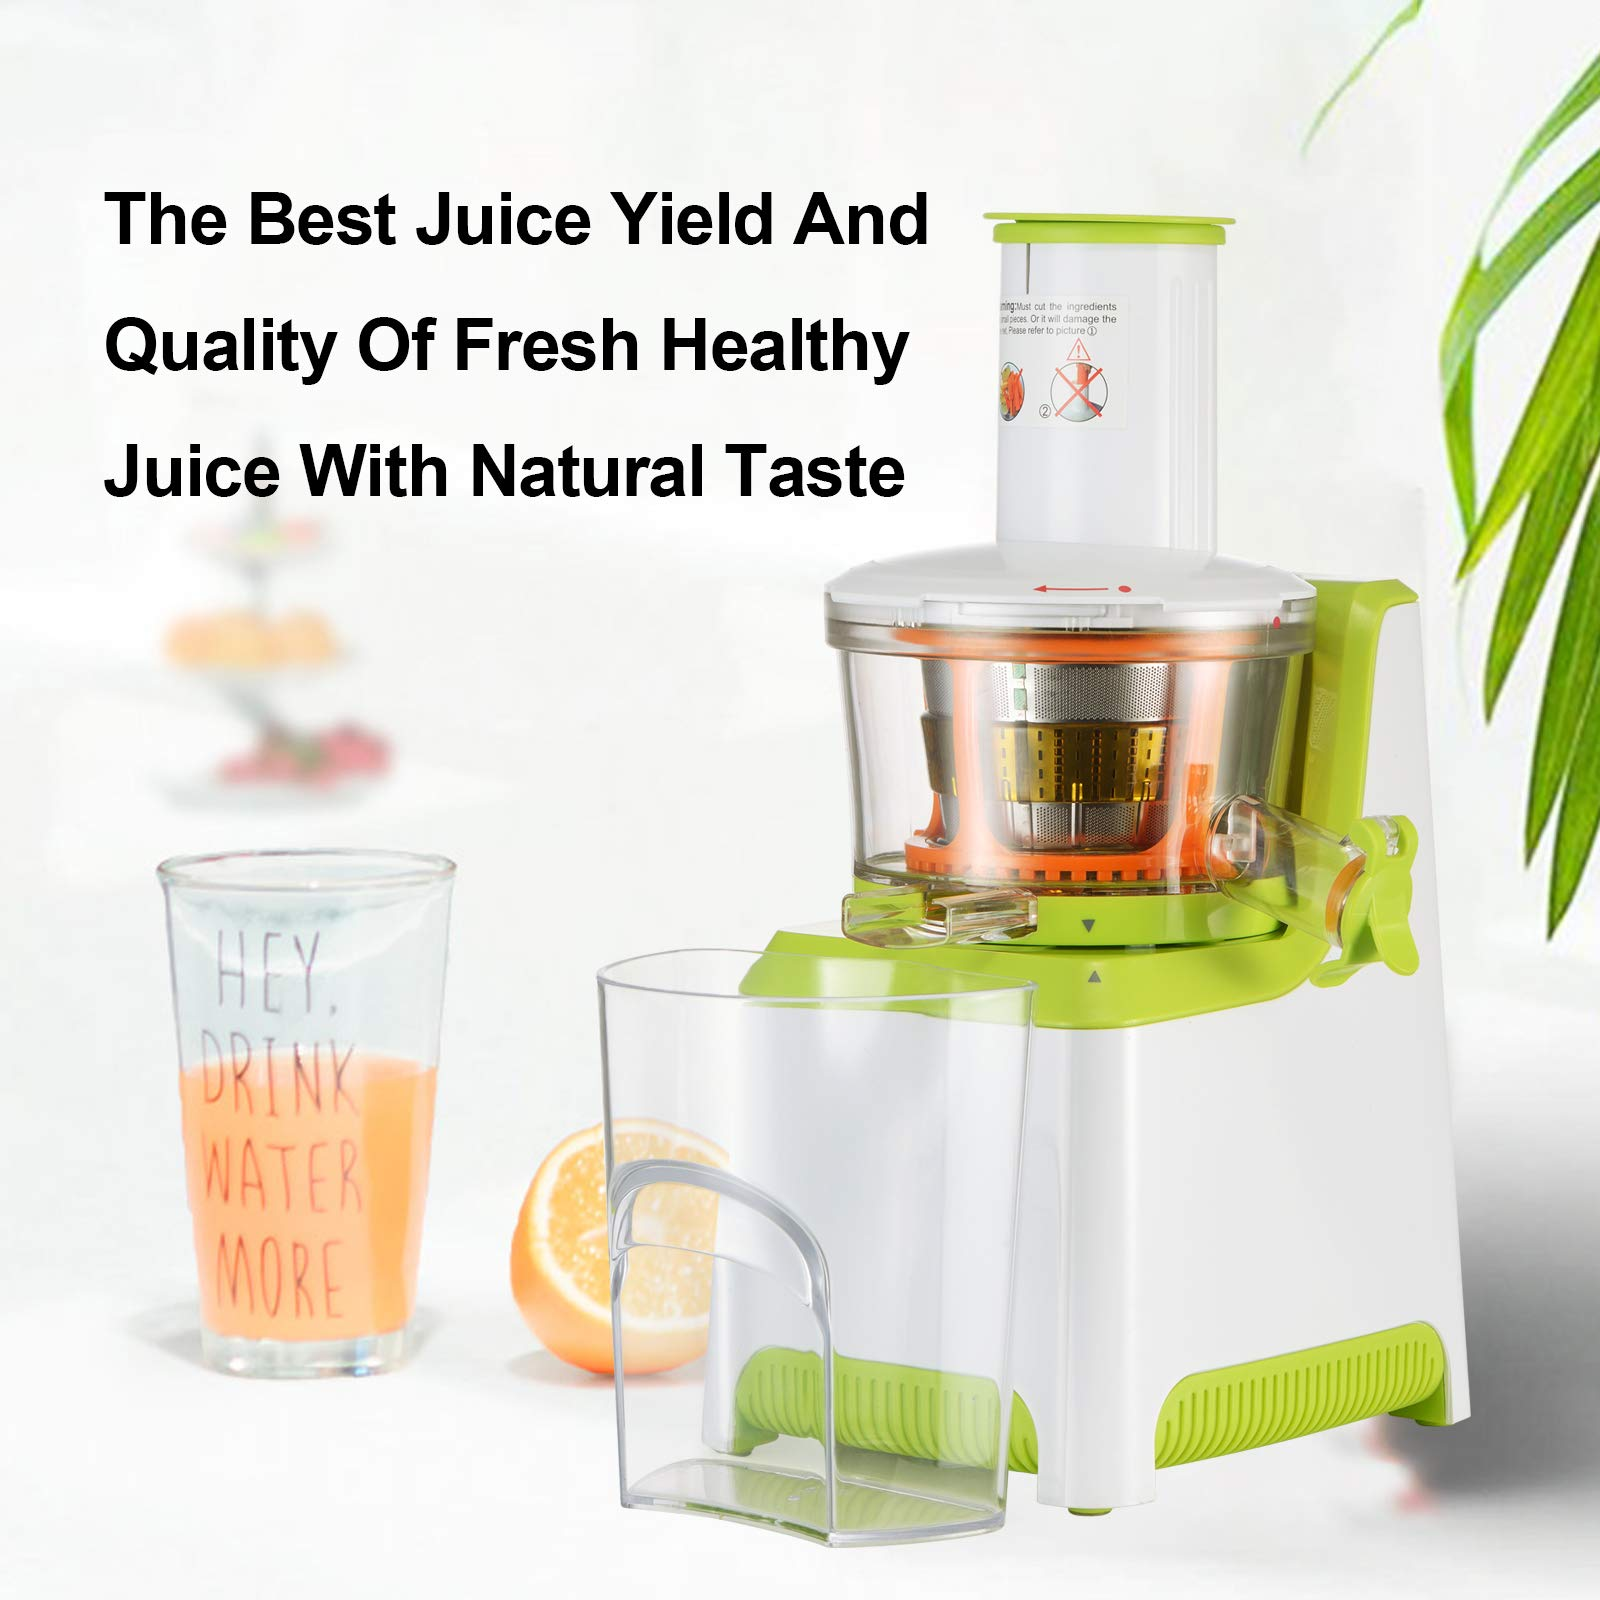 KUPPET Juicer, Slow Masticating Juicer, Higher Juicer Yield, Cold Press Juicer Machine with Quiet Motor & Reverse Function, High Nutrient Fruit & Vegetable Juice, Easy to Clean (Green&White) by KUPPET (Image #3)